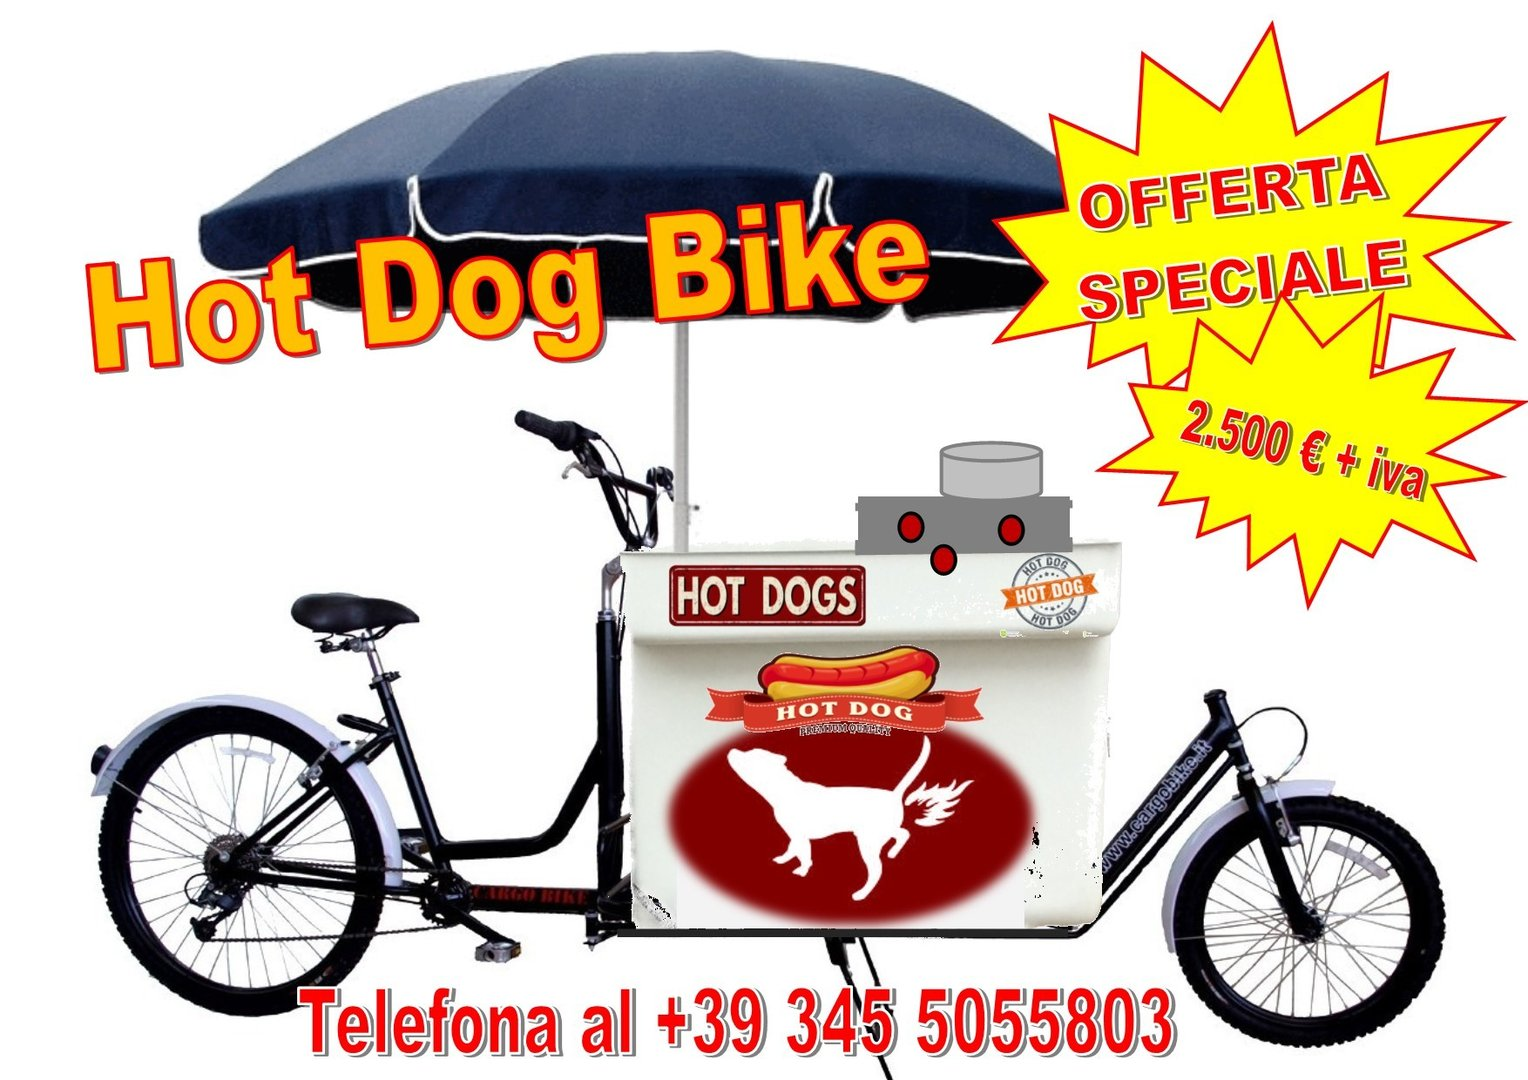 HOT DOG WAGON BIKE